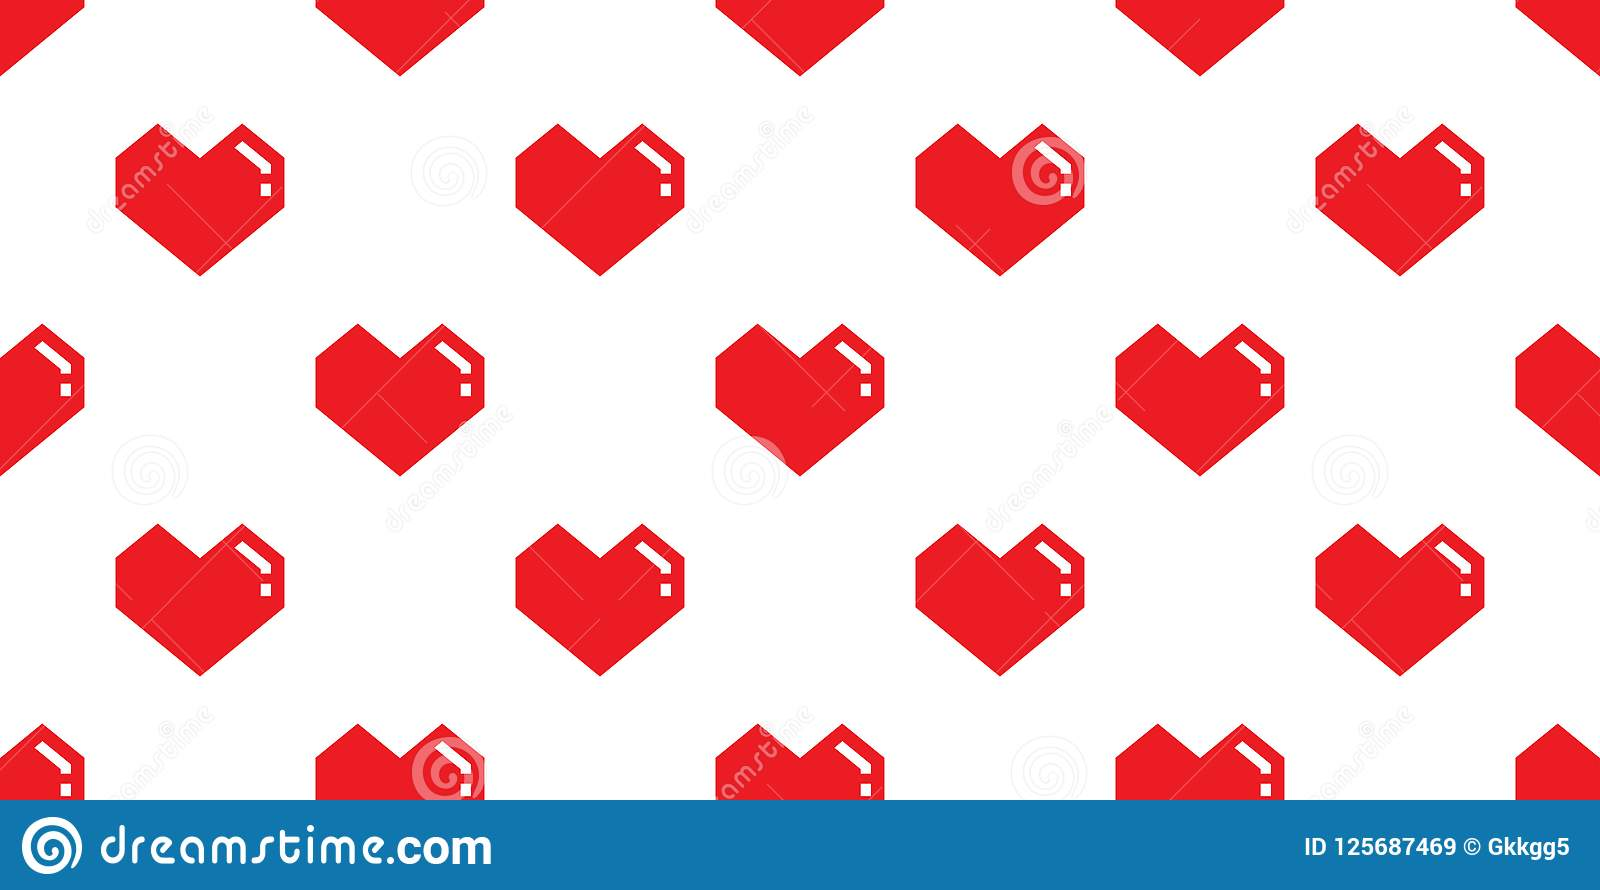 Red Heart Seamless Pattern Vector Valentine Day Isolated Geometric